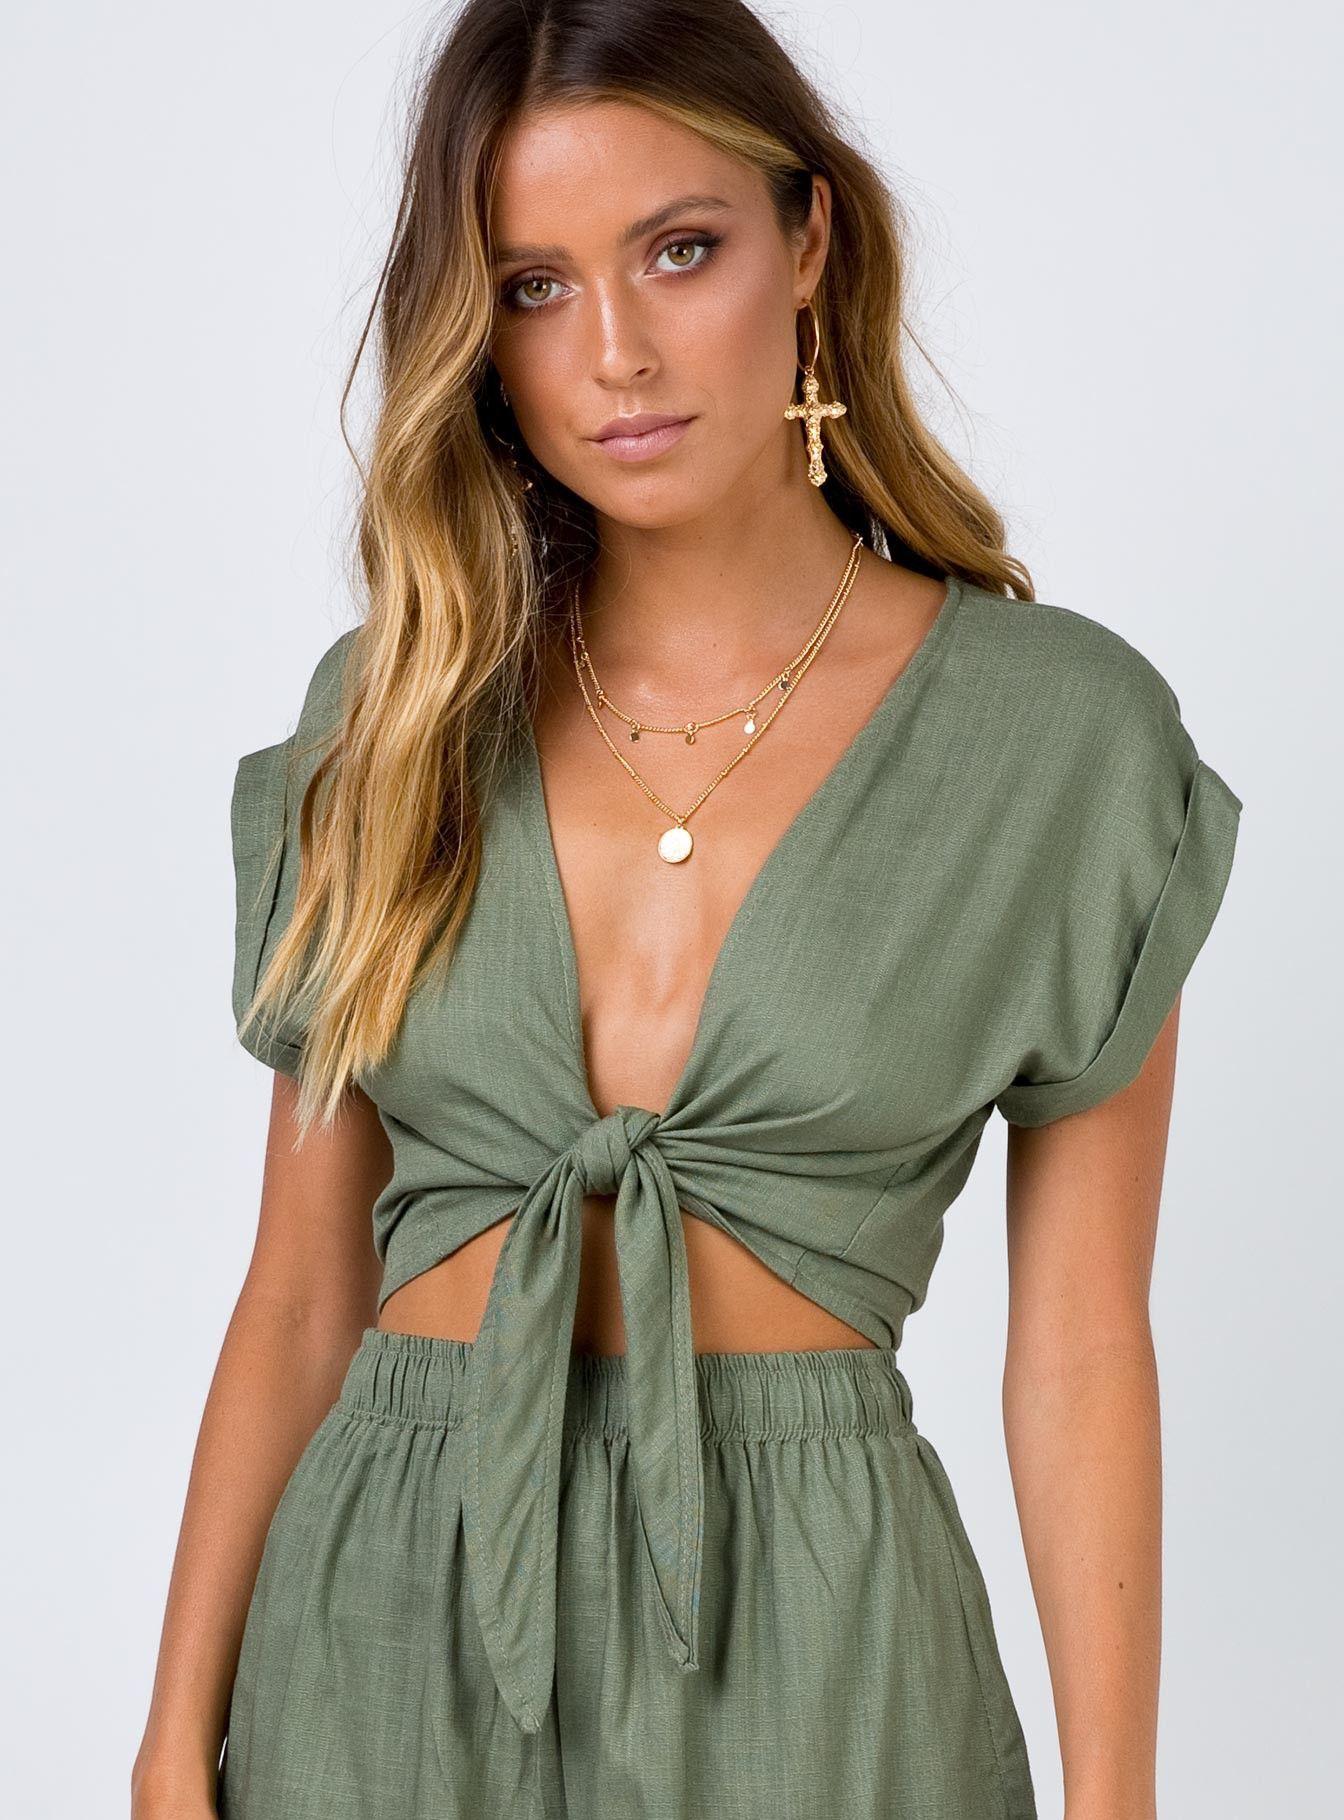 f1a1ecda34473b Beach+House+Tie+Front+Top+Khaki+-+ Crop+top Tie+at+front+fastening  Plunging+neckline Relaxed+fit Unlined Linen+Look Cotton+Polyester+Blend ...